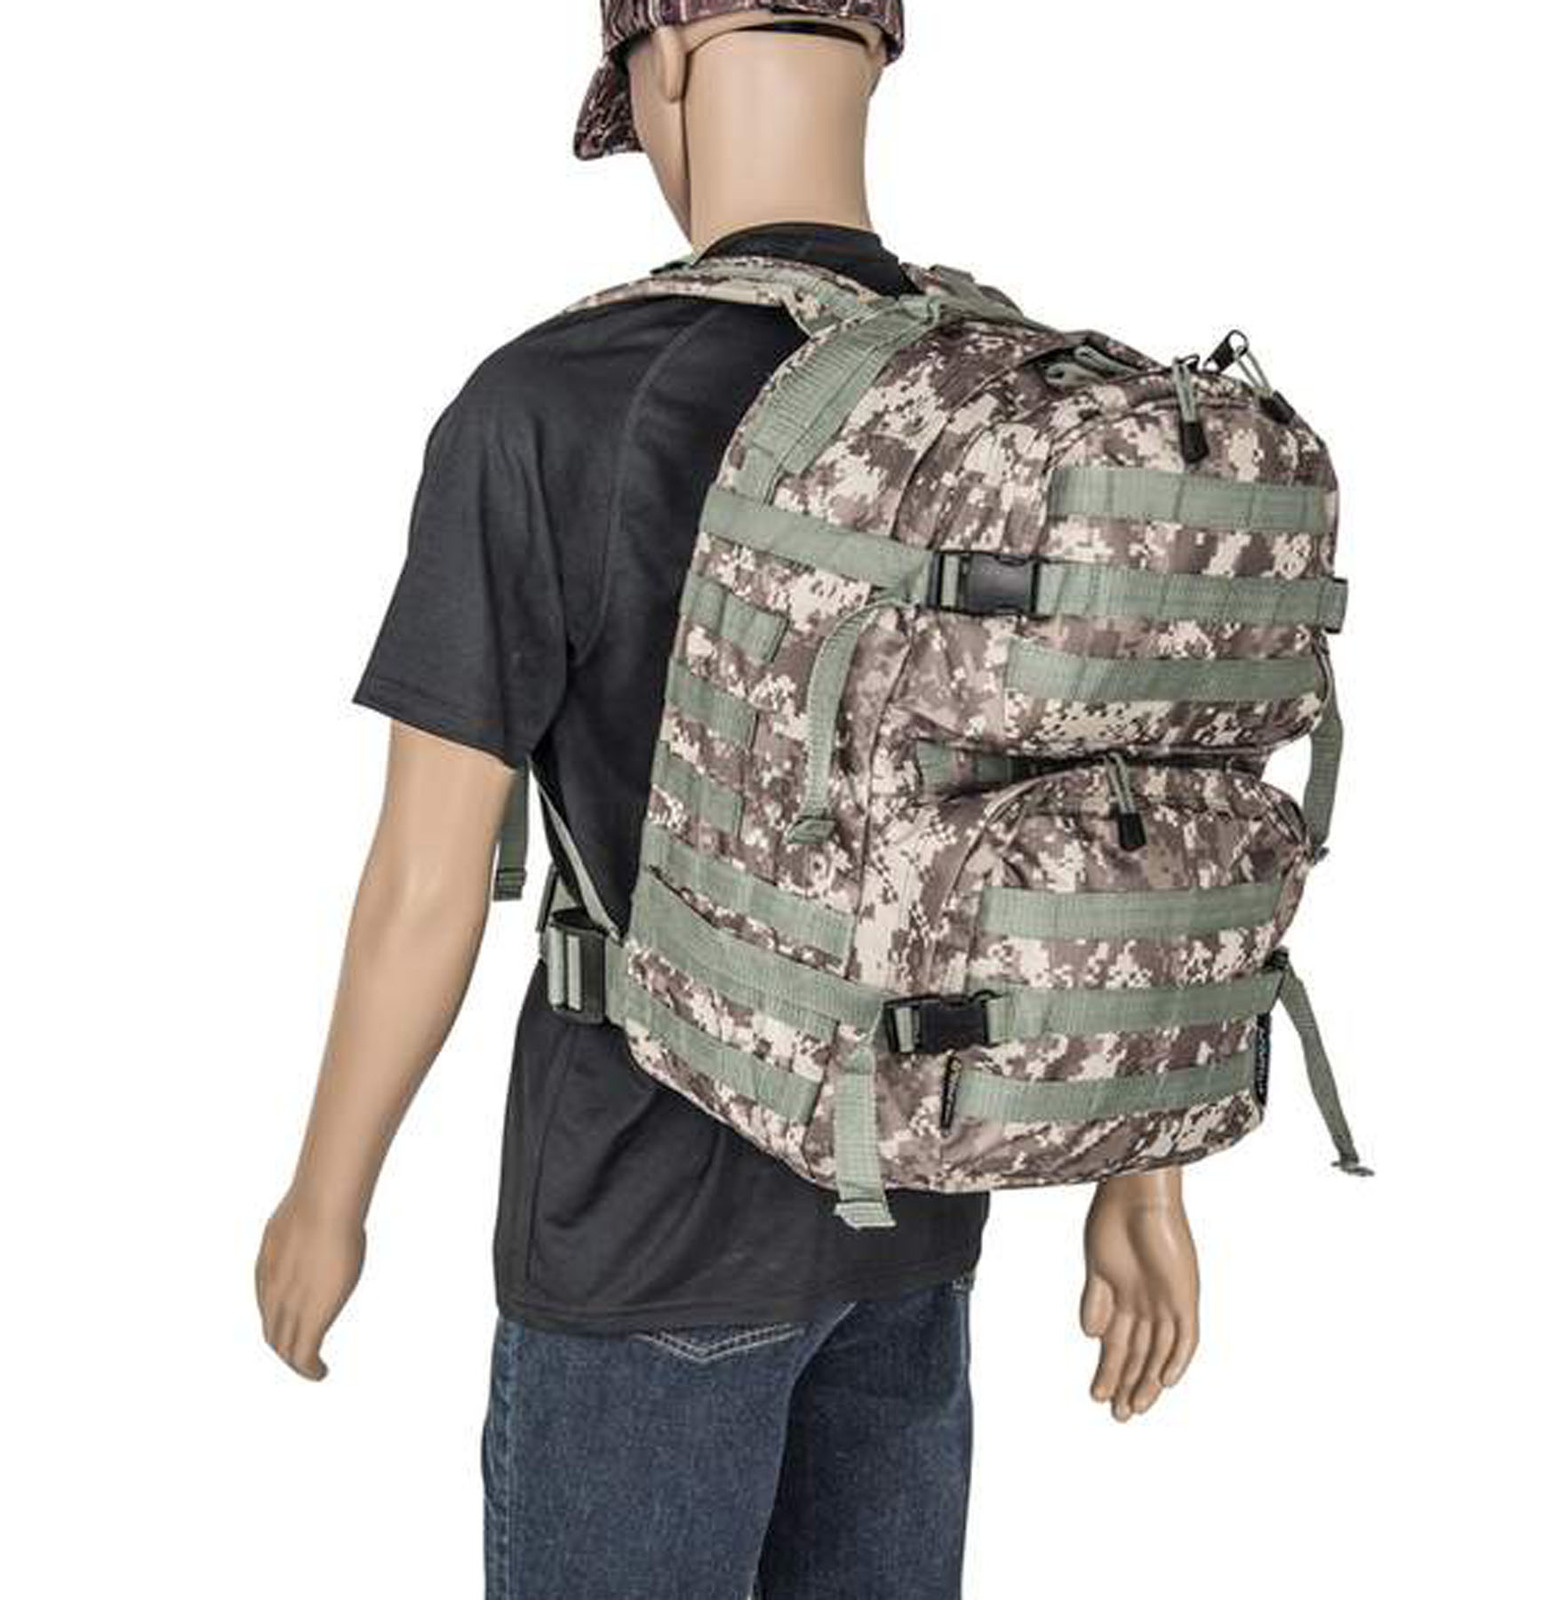 Digital camo army backpack w person 1800 lubpadc